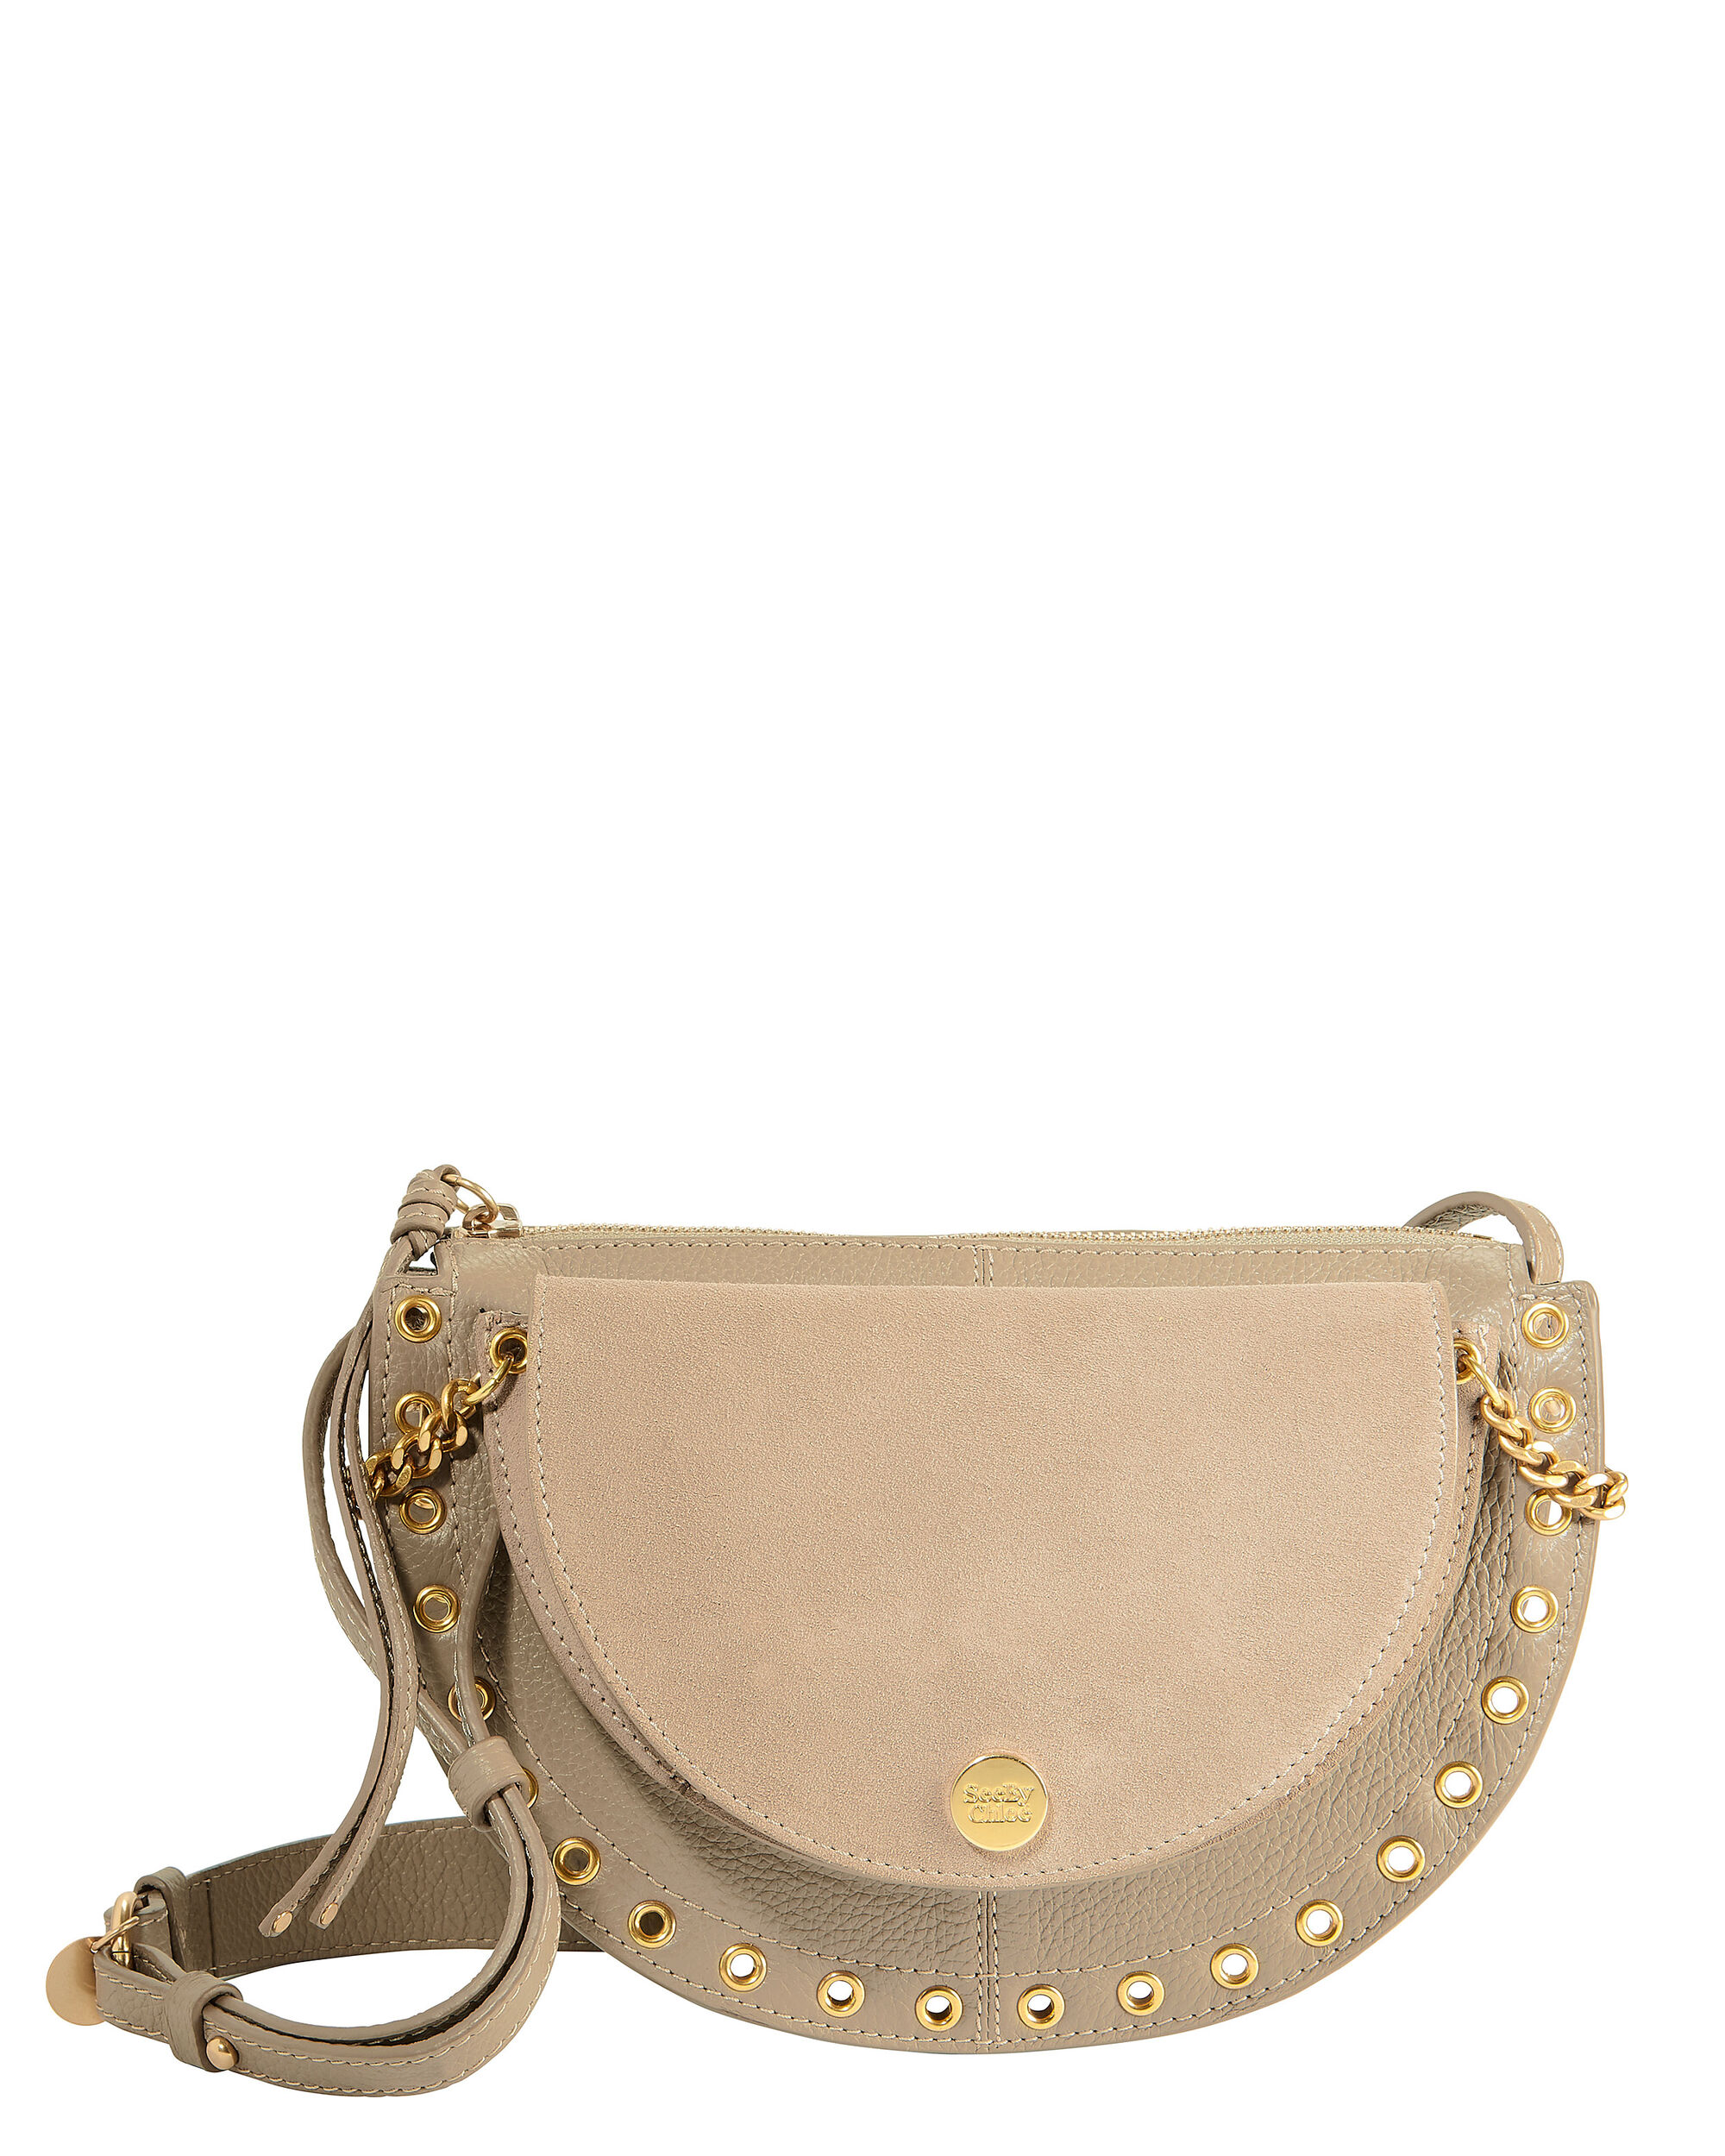 Kriss Small Grey Shoulder Bag, GREY, hi-res